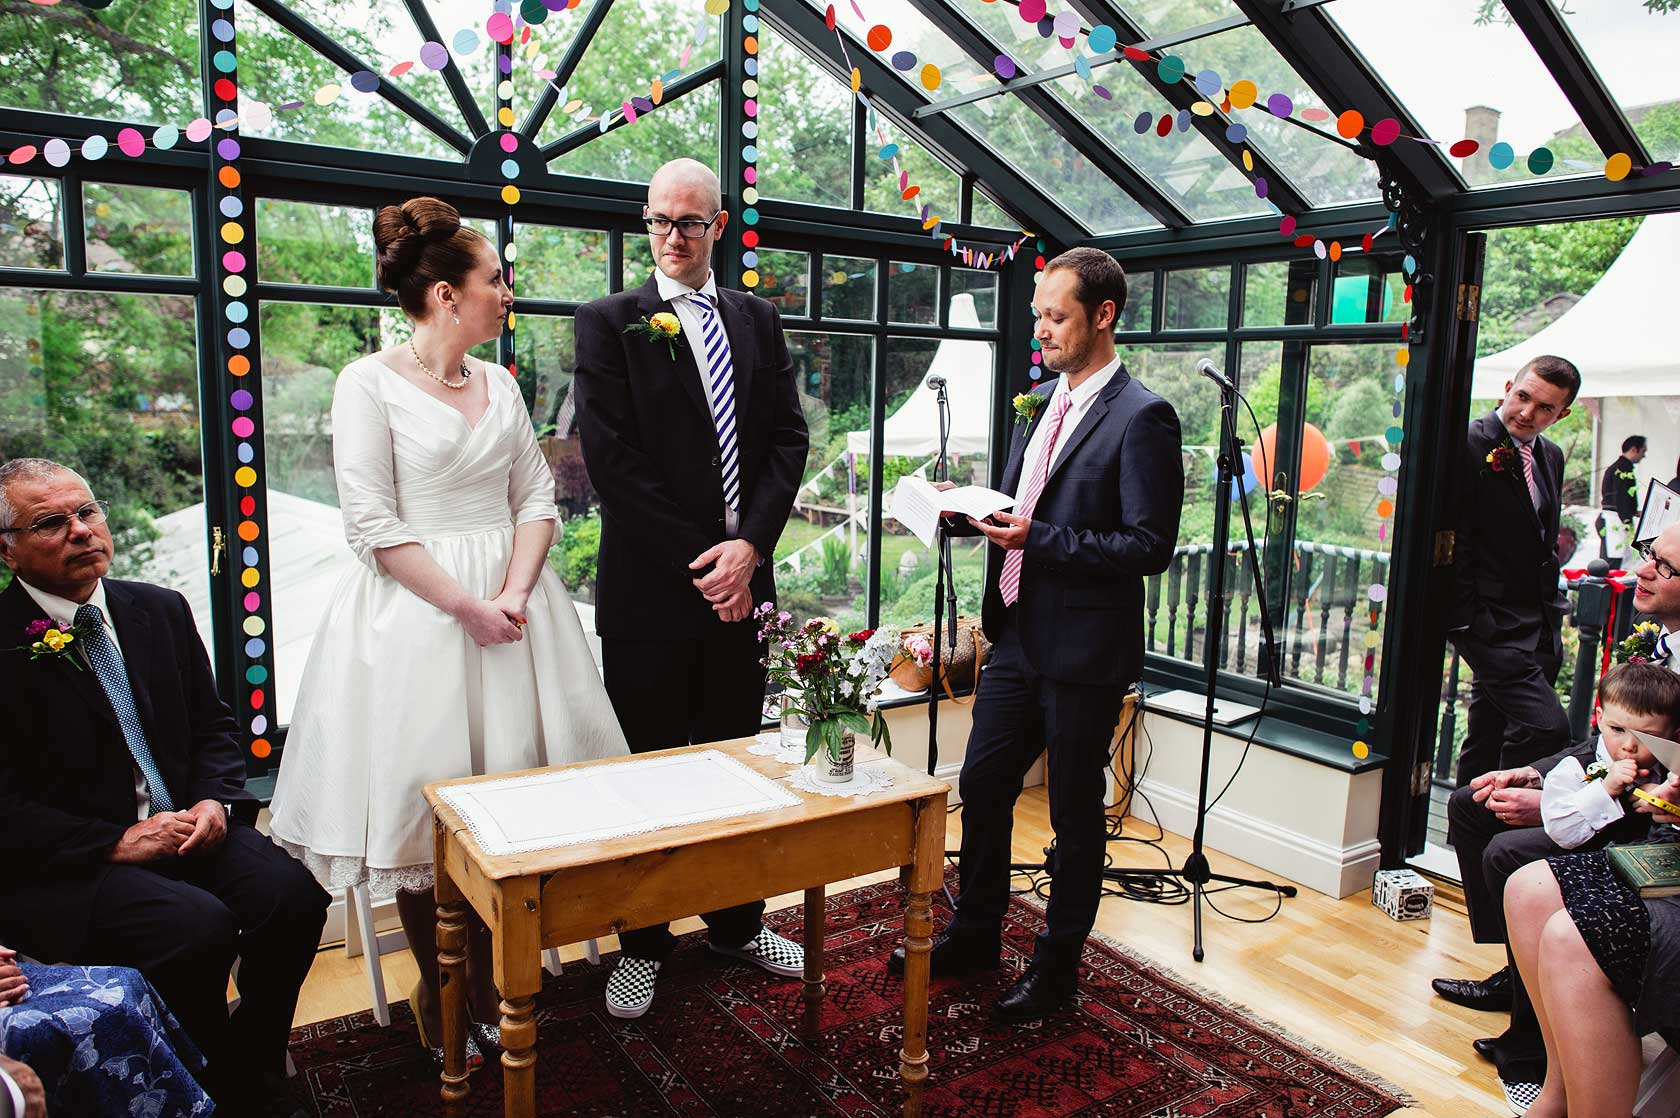 Civil ceremony reading by guest